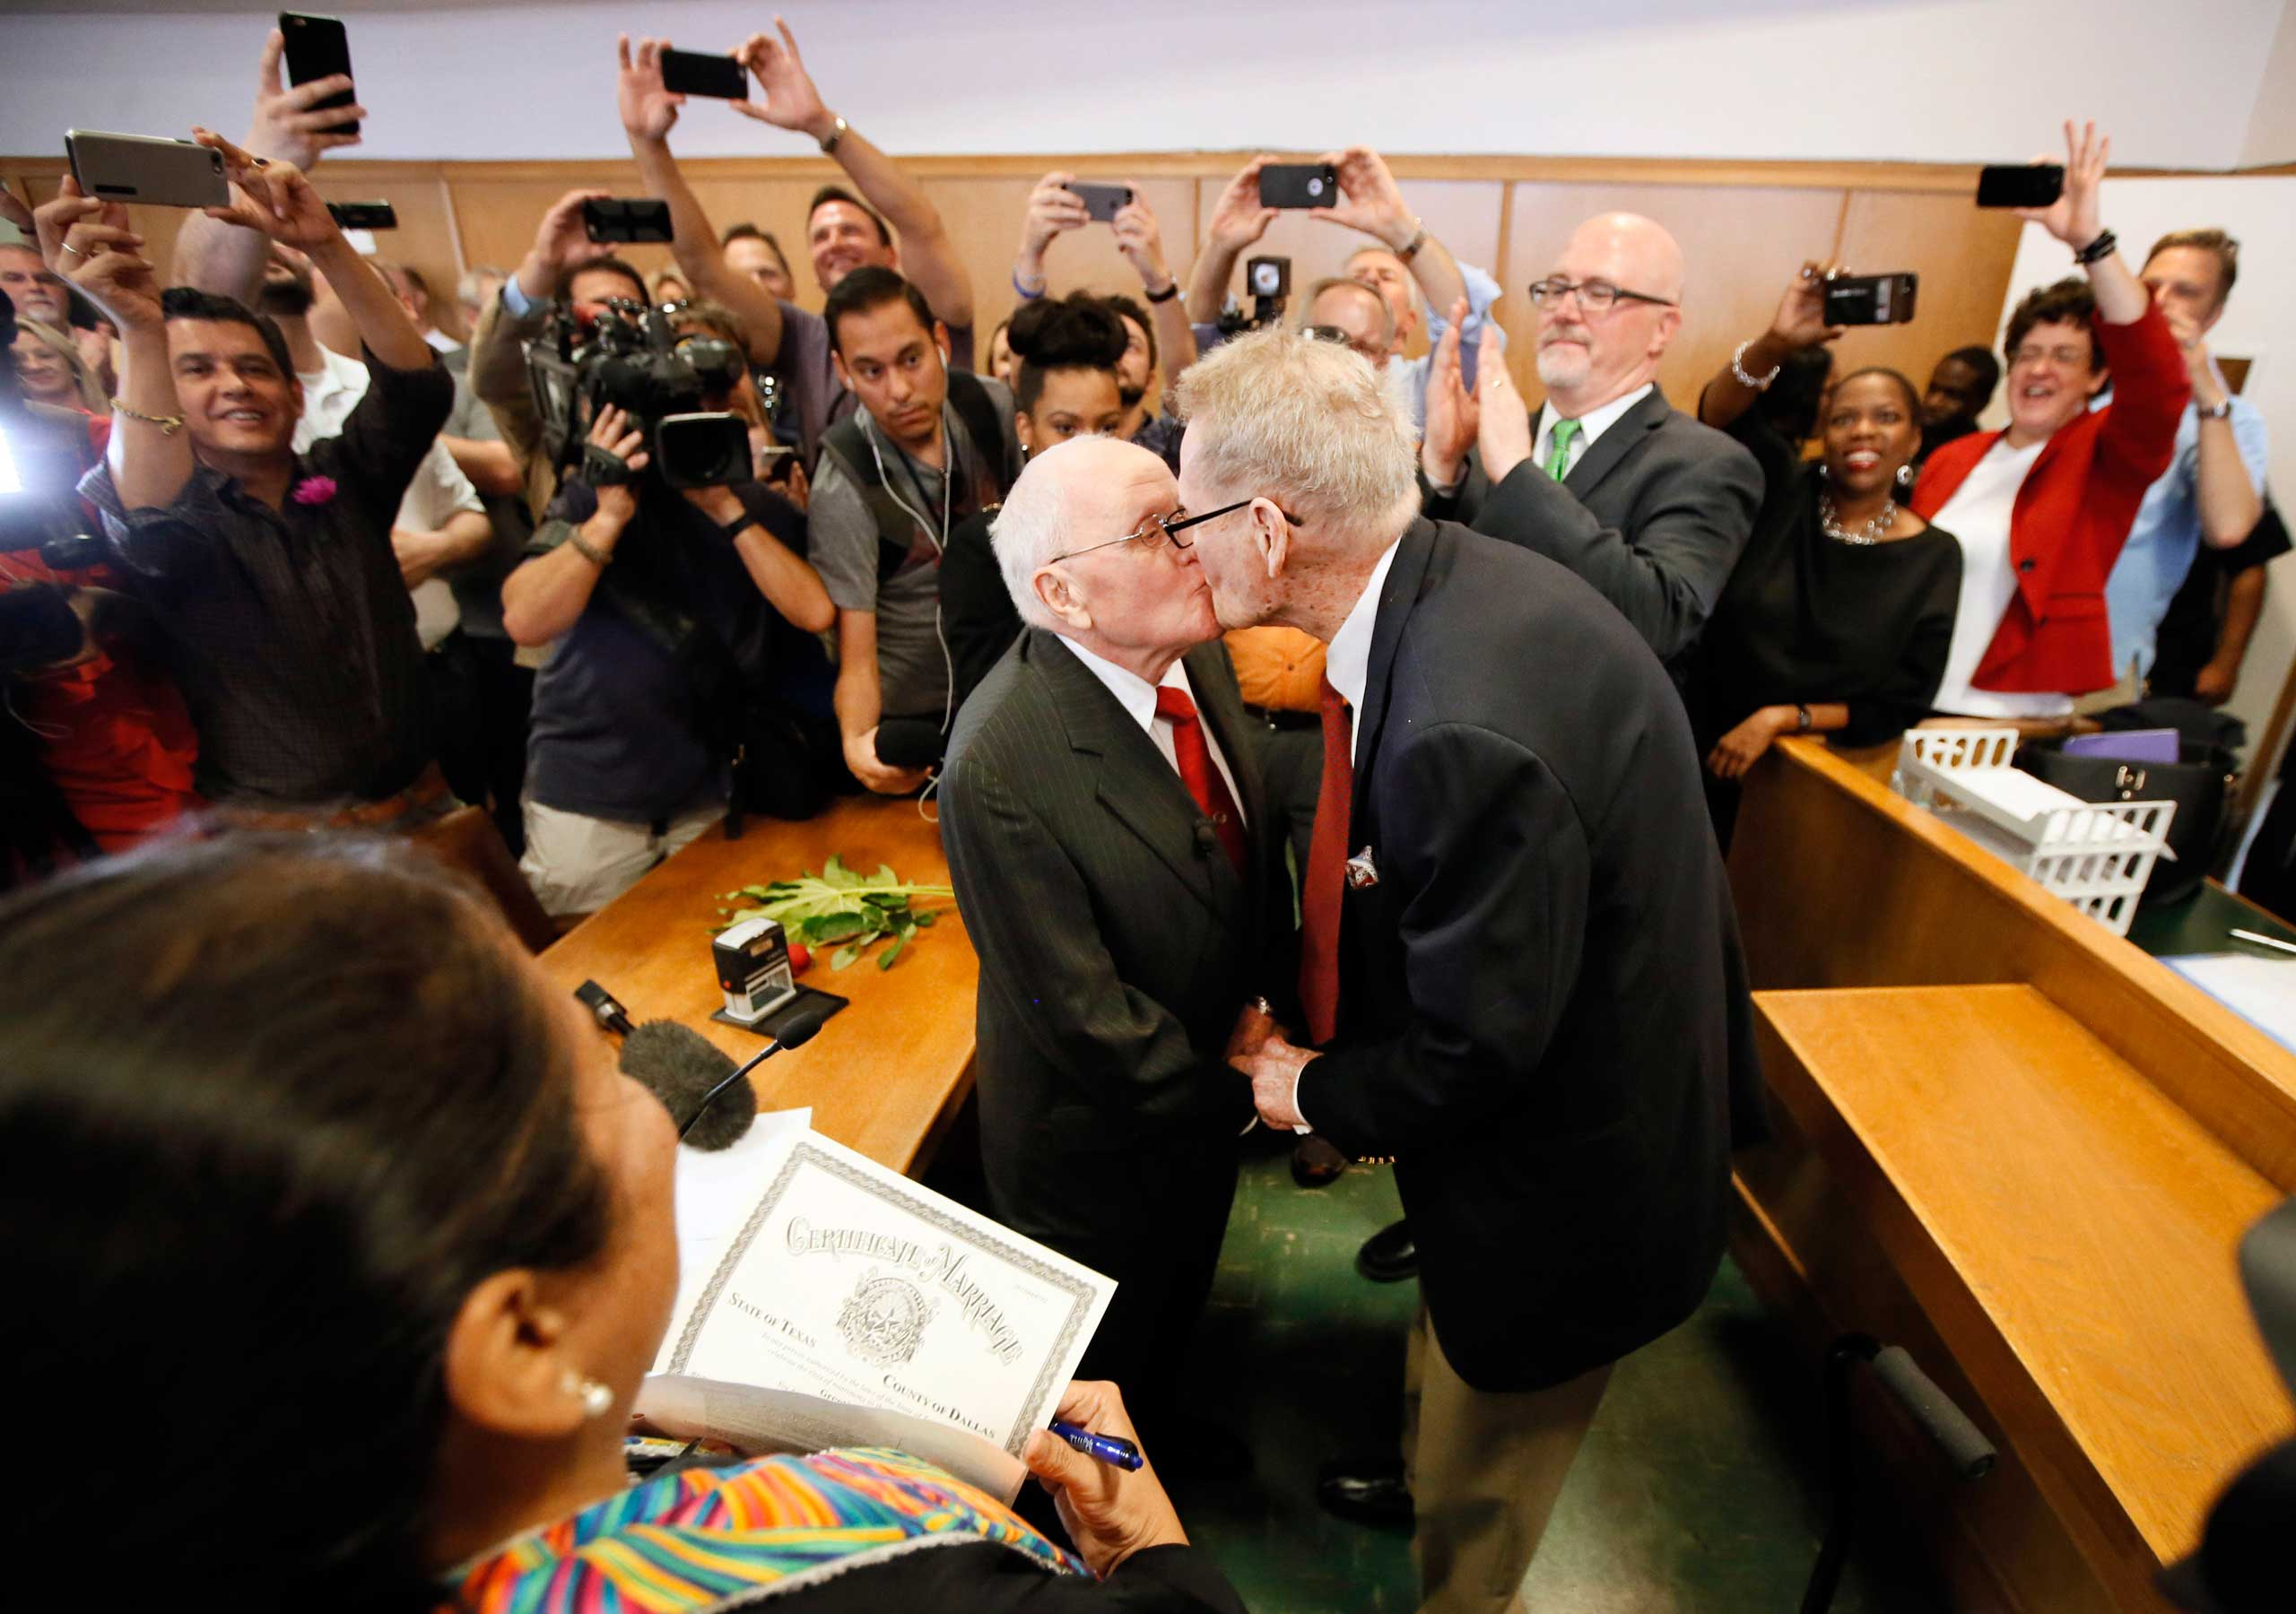 George Harris, center left, 82, and Jack Evans, center right, 85, kiss after being married by Judge Garcia in Dallas on Friday, June 26, 2015.